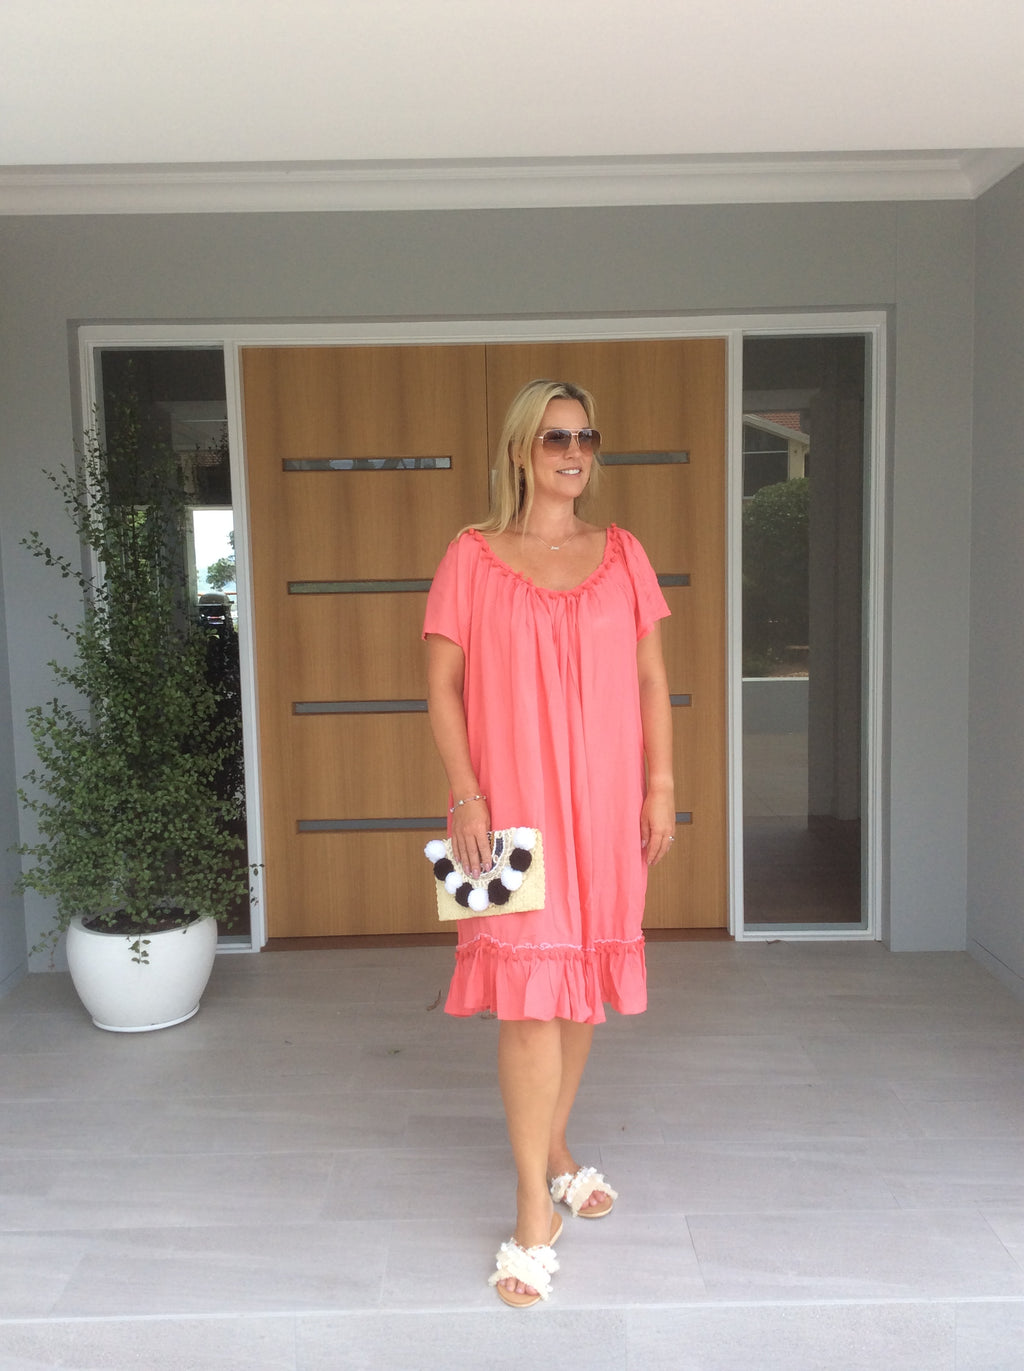 POM POM DRESS - Watermelon